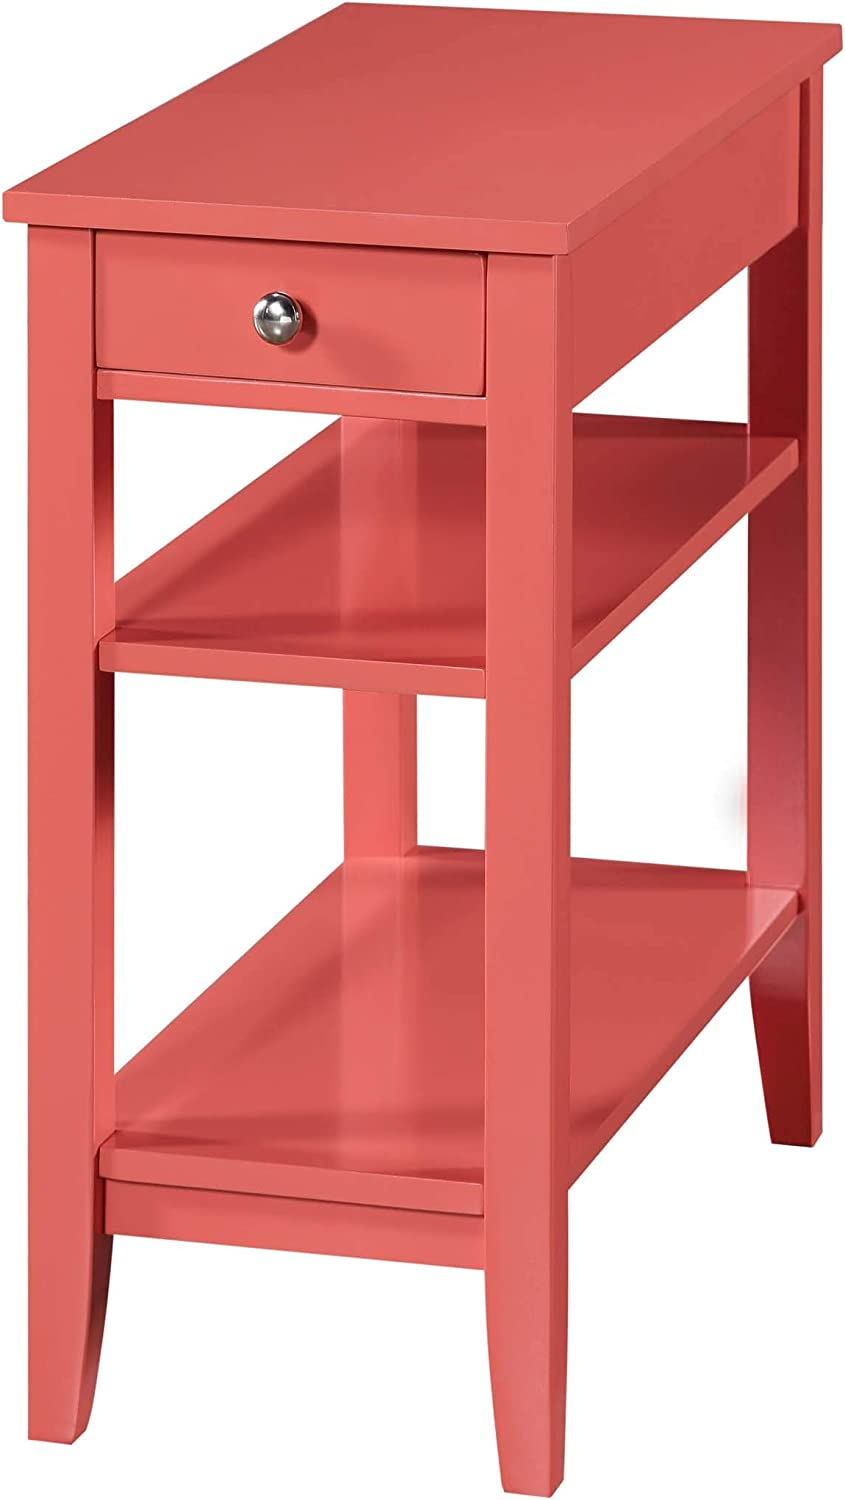 Convenience Concepts American Heritage Three Tier End Table with Drawer, Coral